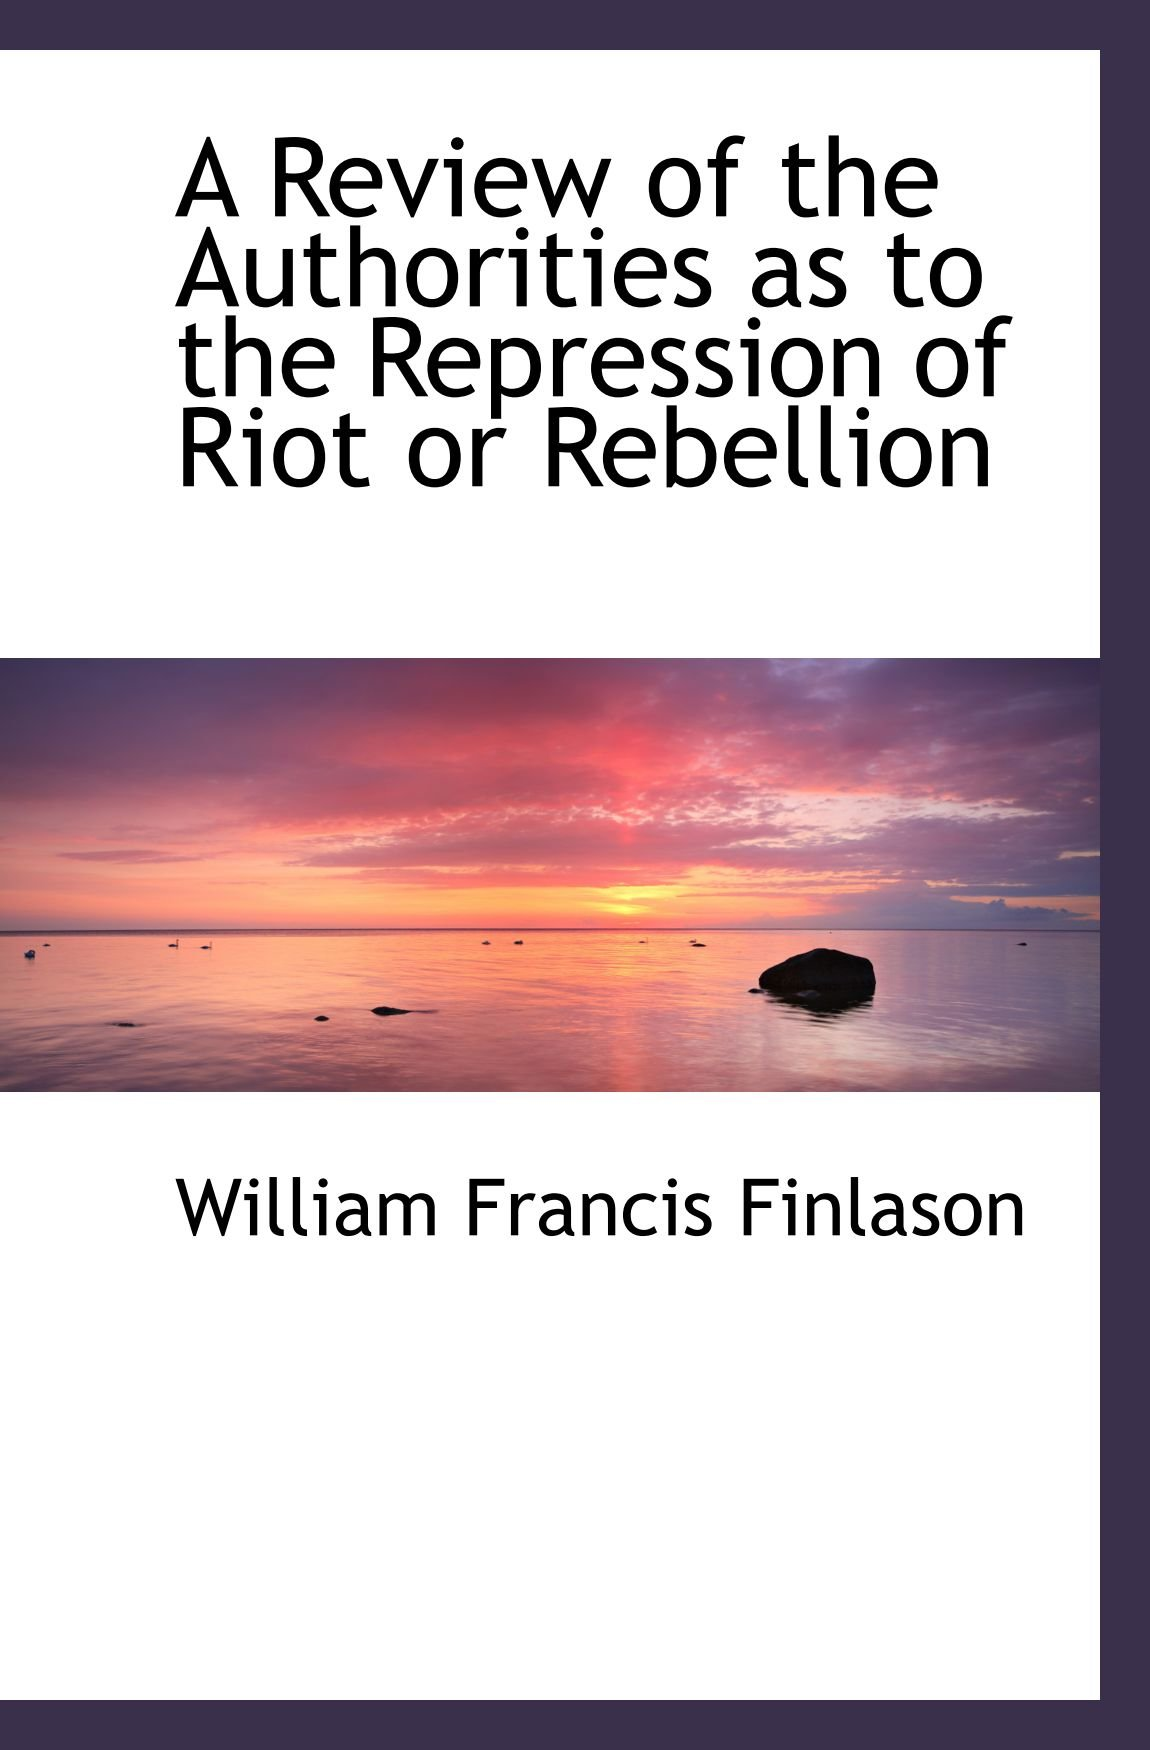 A Review of the Authorities as to the Repression of Riot or Rebellion pdf